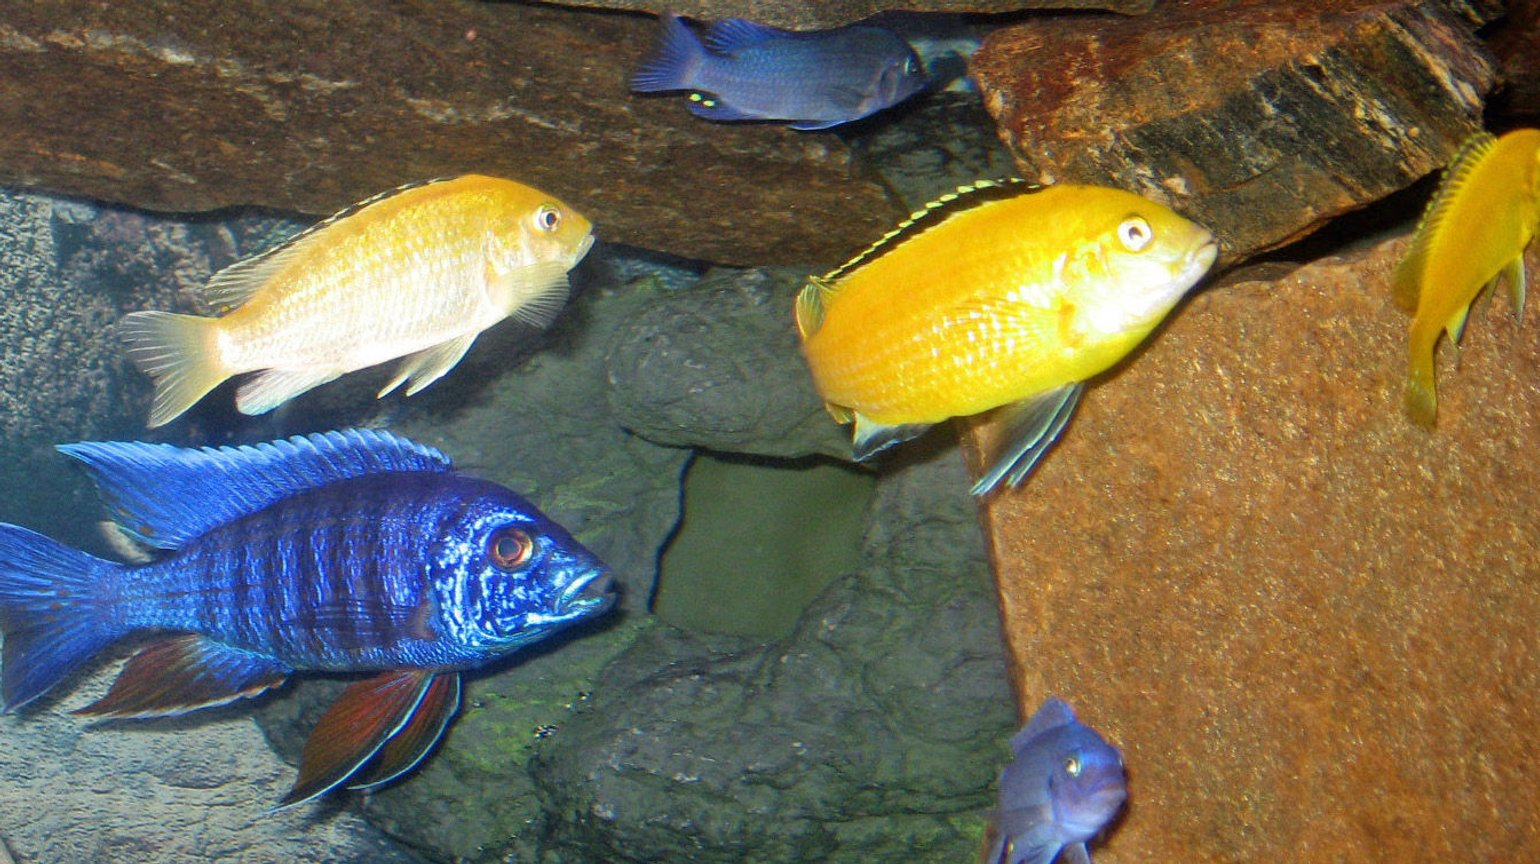 freshwater fish - labidochromis caeruleus - electric yellow cichlid stocking in 46 gallons tank - group of africans